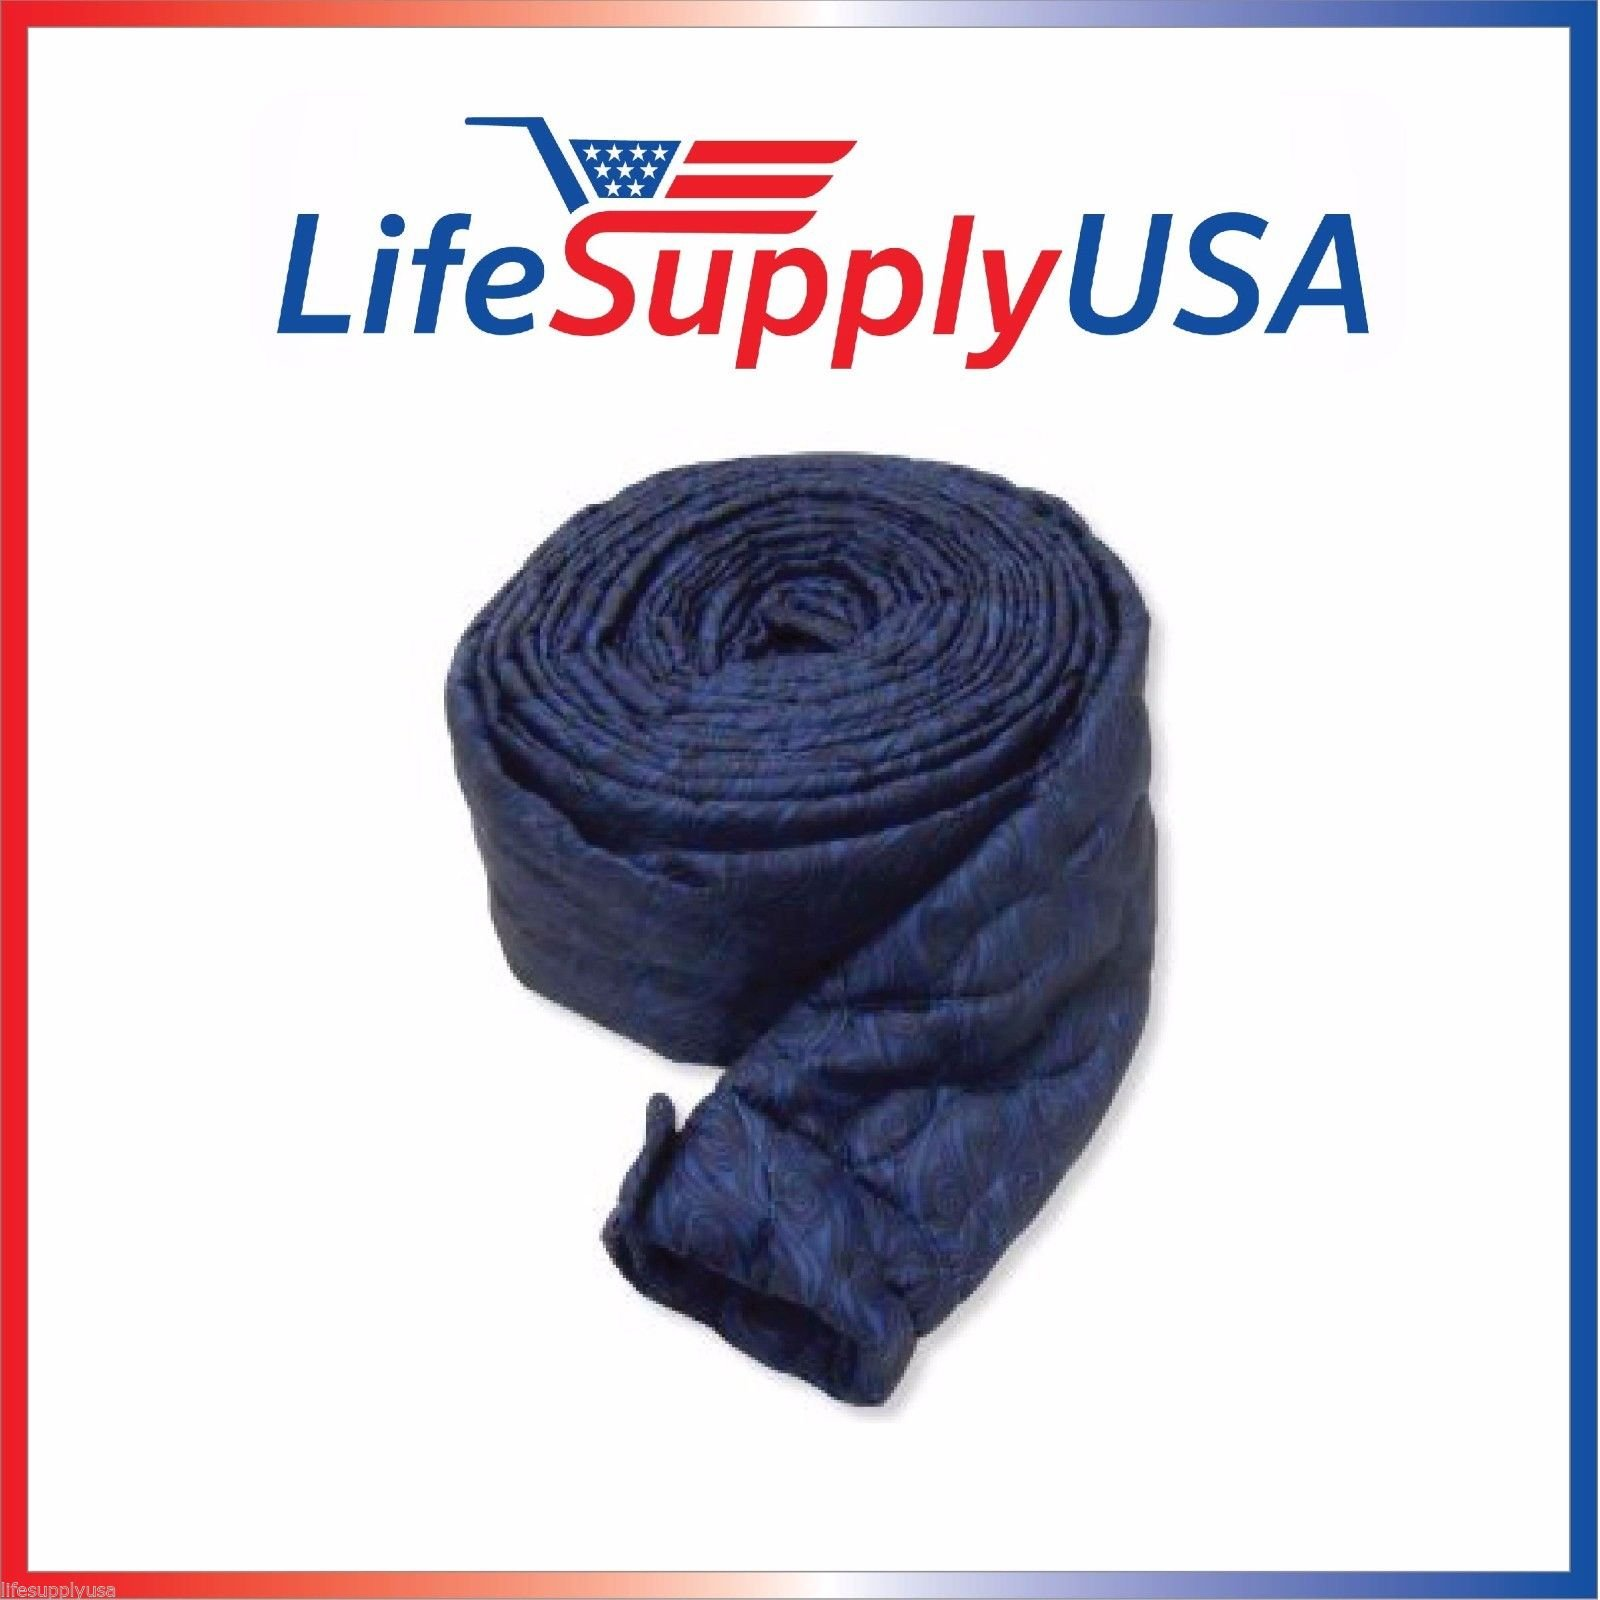 35 Ft Quilted Padded Central Vacuum Hose Cover with Zipper by LifeSupplyUSA